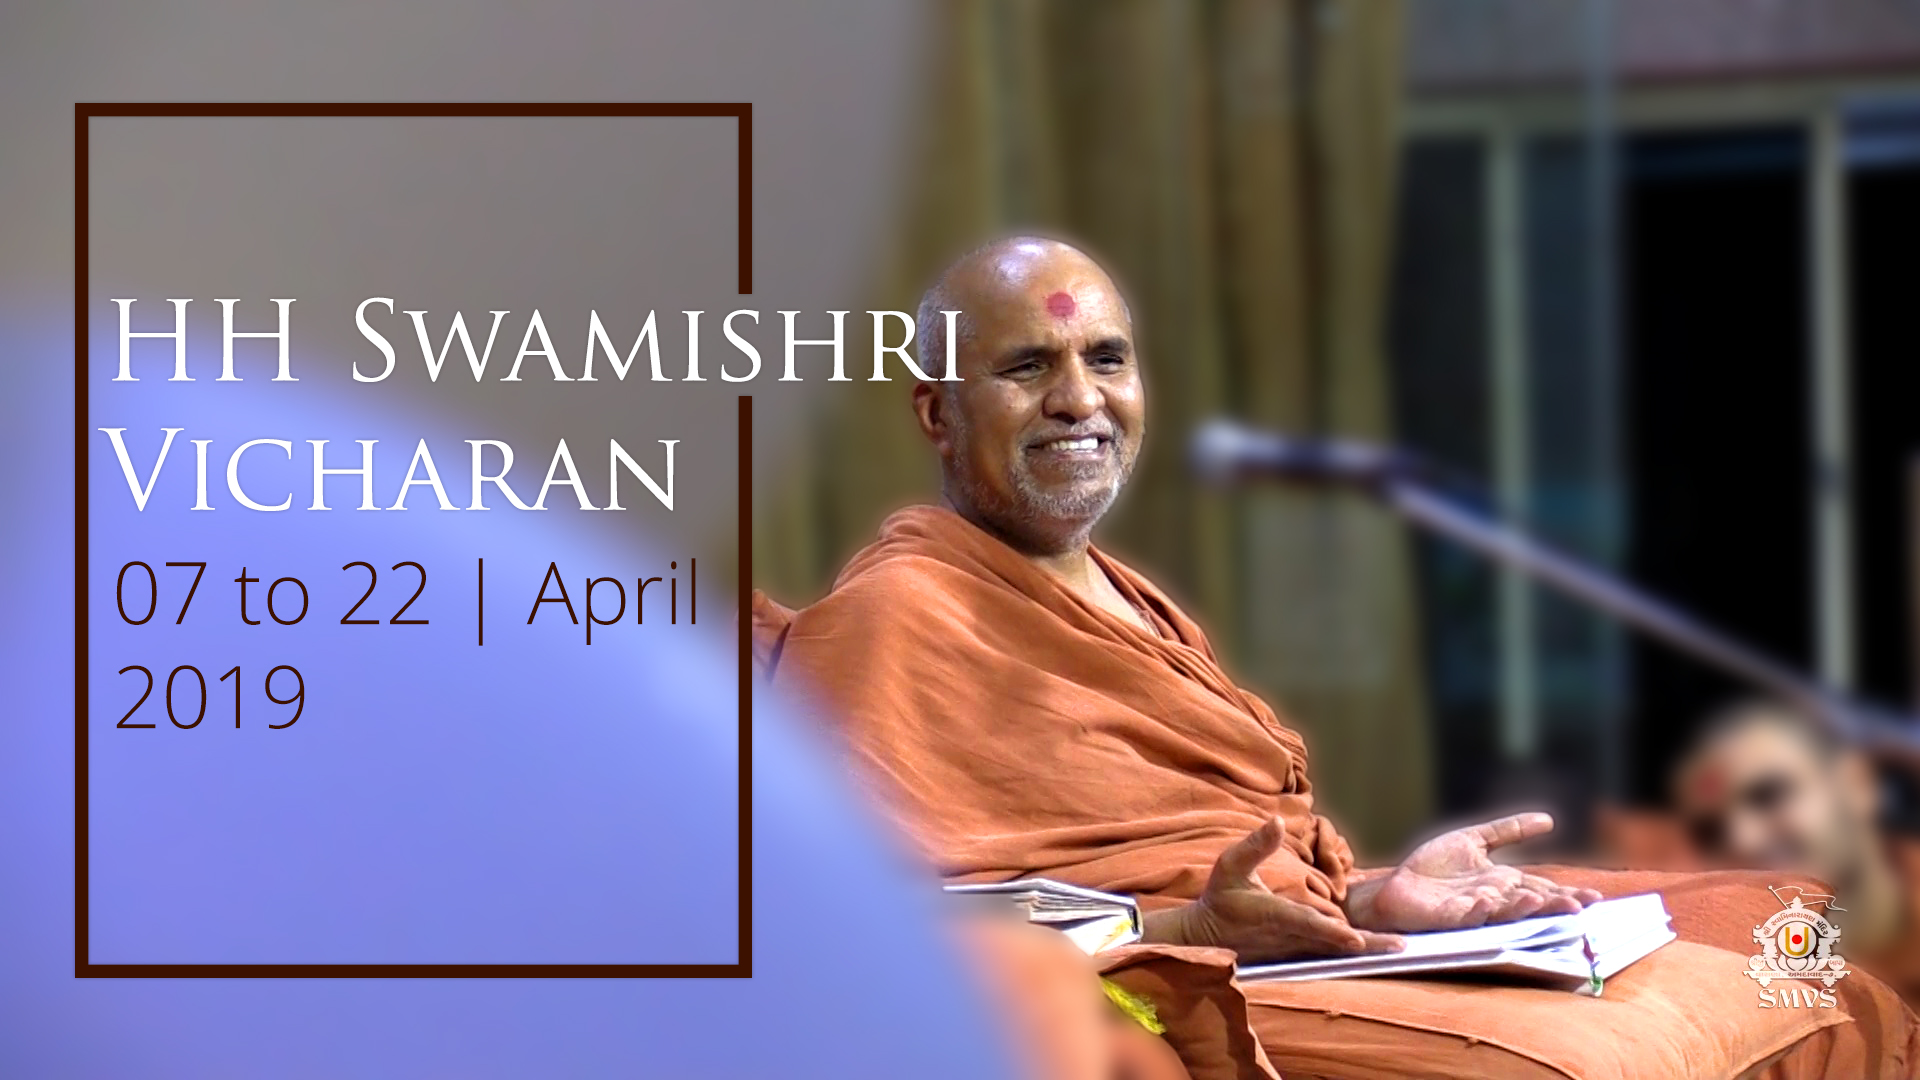 HH Swamishri Vicharan | 07 to 22 April, 2019